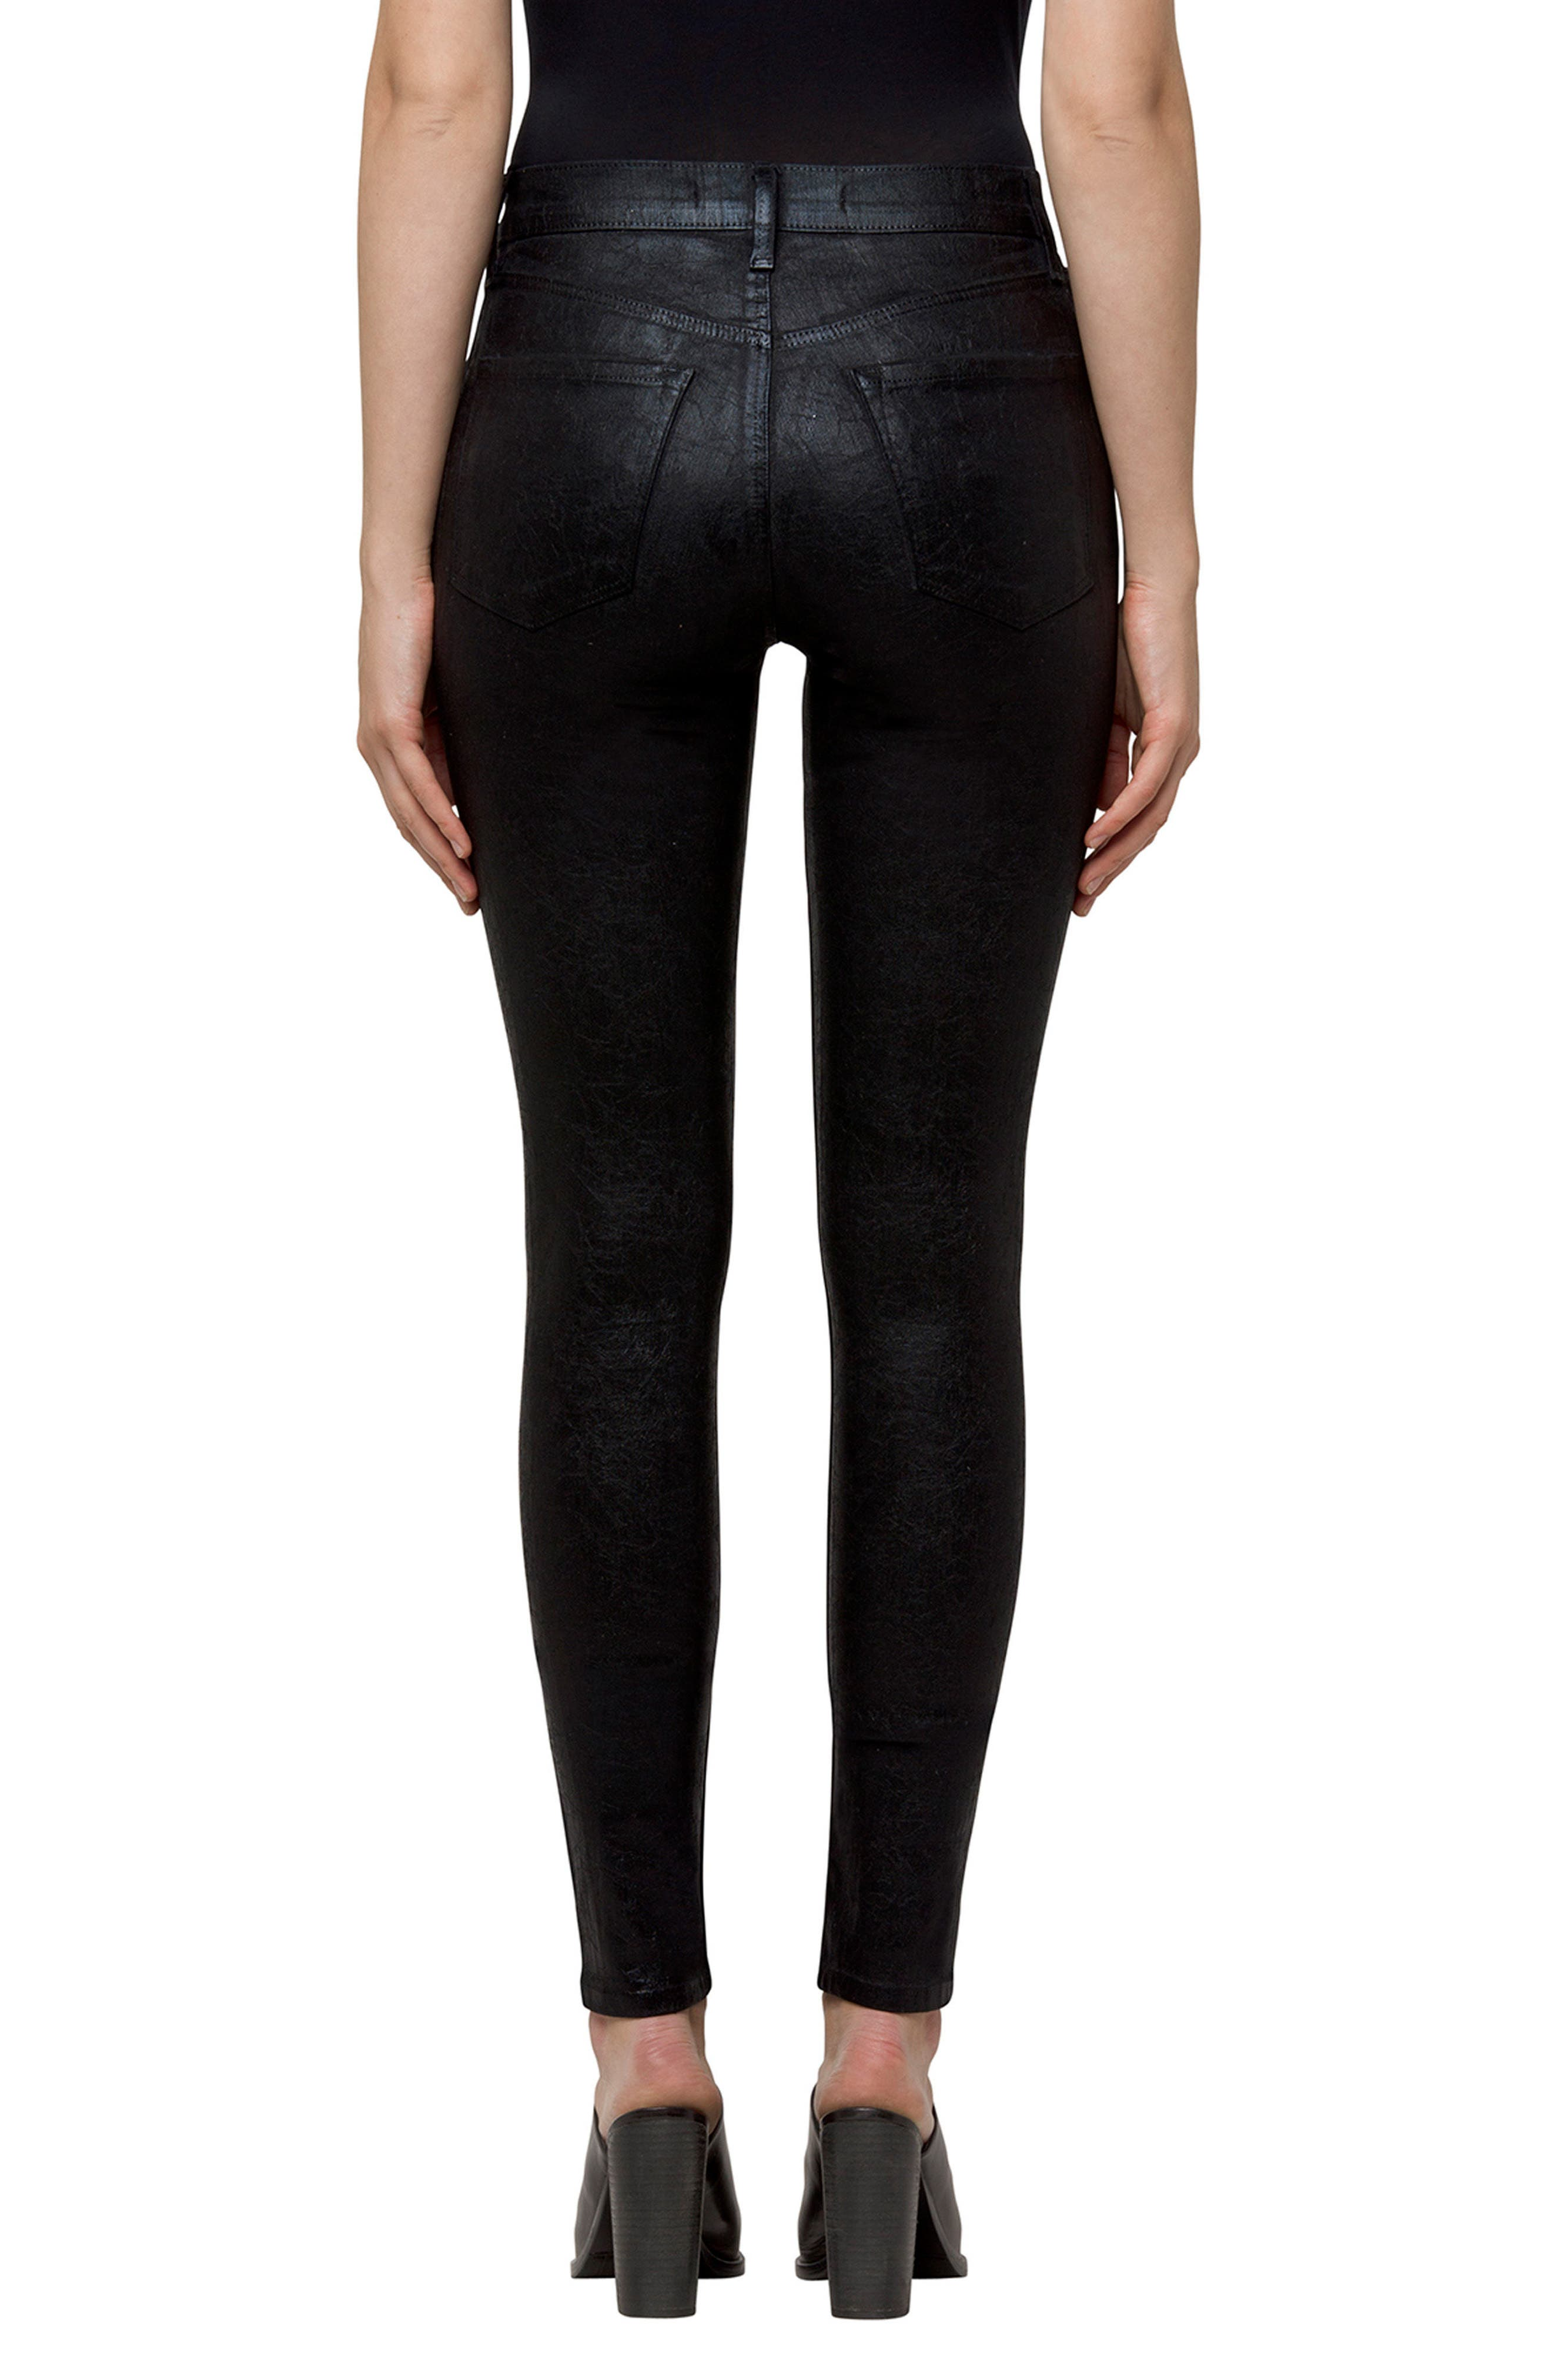 Maria High Waist Velvet Skinny Jeans,                             Alternate thumbnail 2, color,                             009